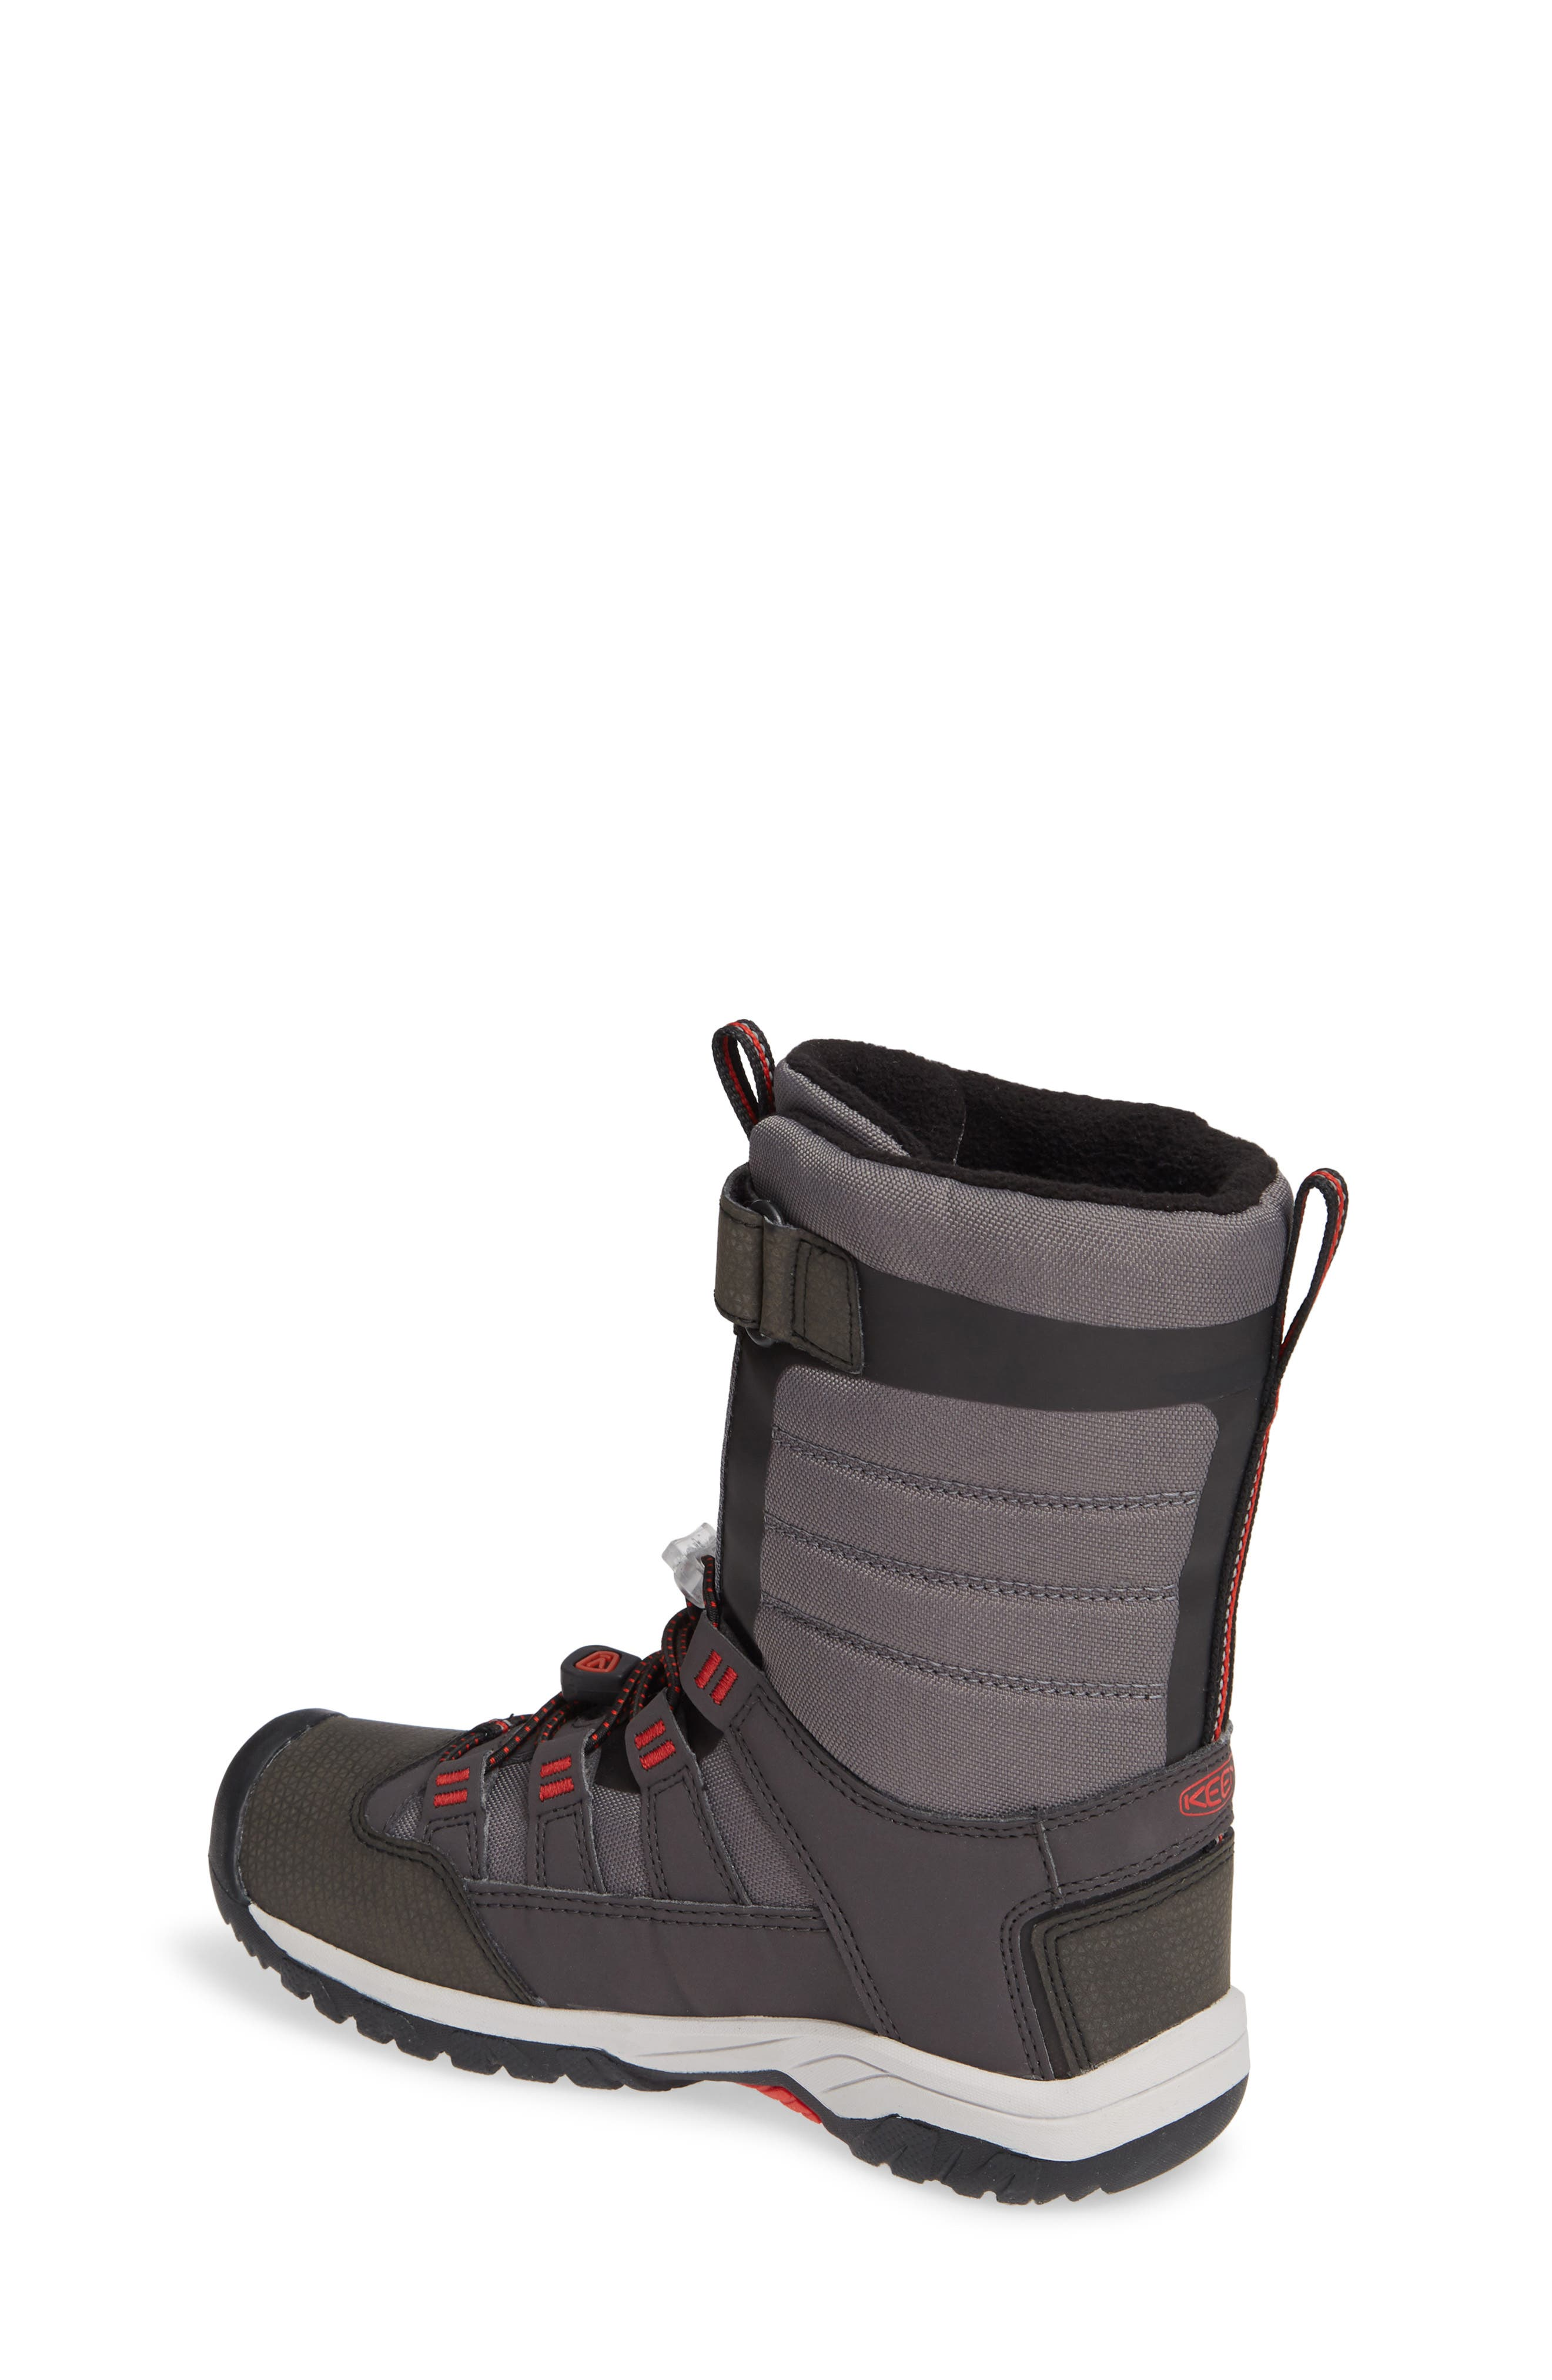 Winterport Neo Waterproof Insulated Boot,                             Alternate thumbnail 2, color,                             MAGNET/ FIREY RED